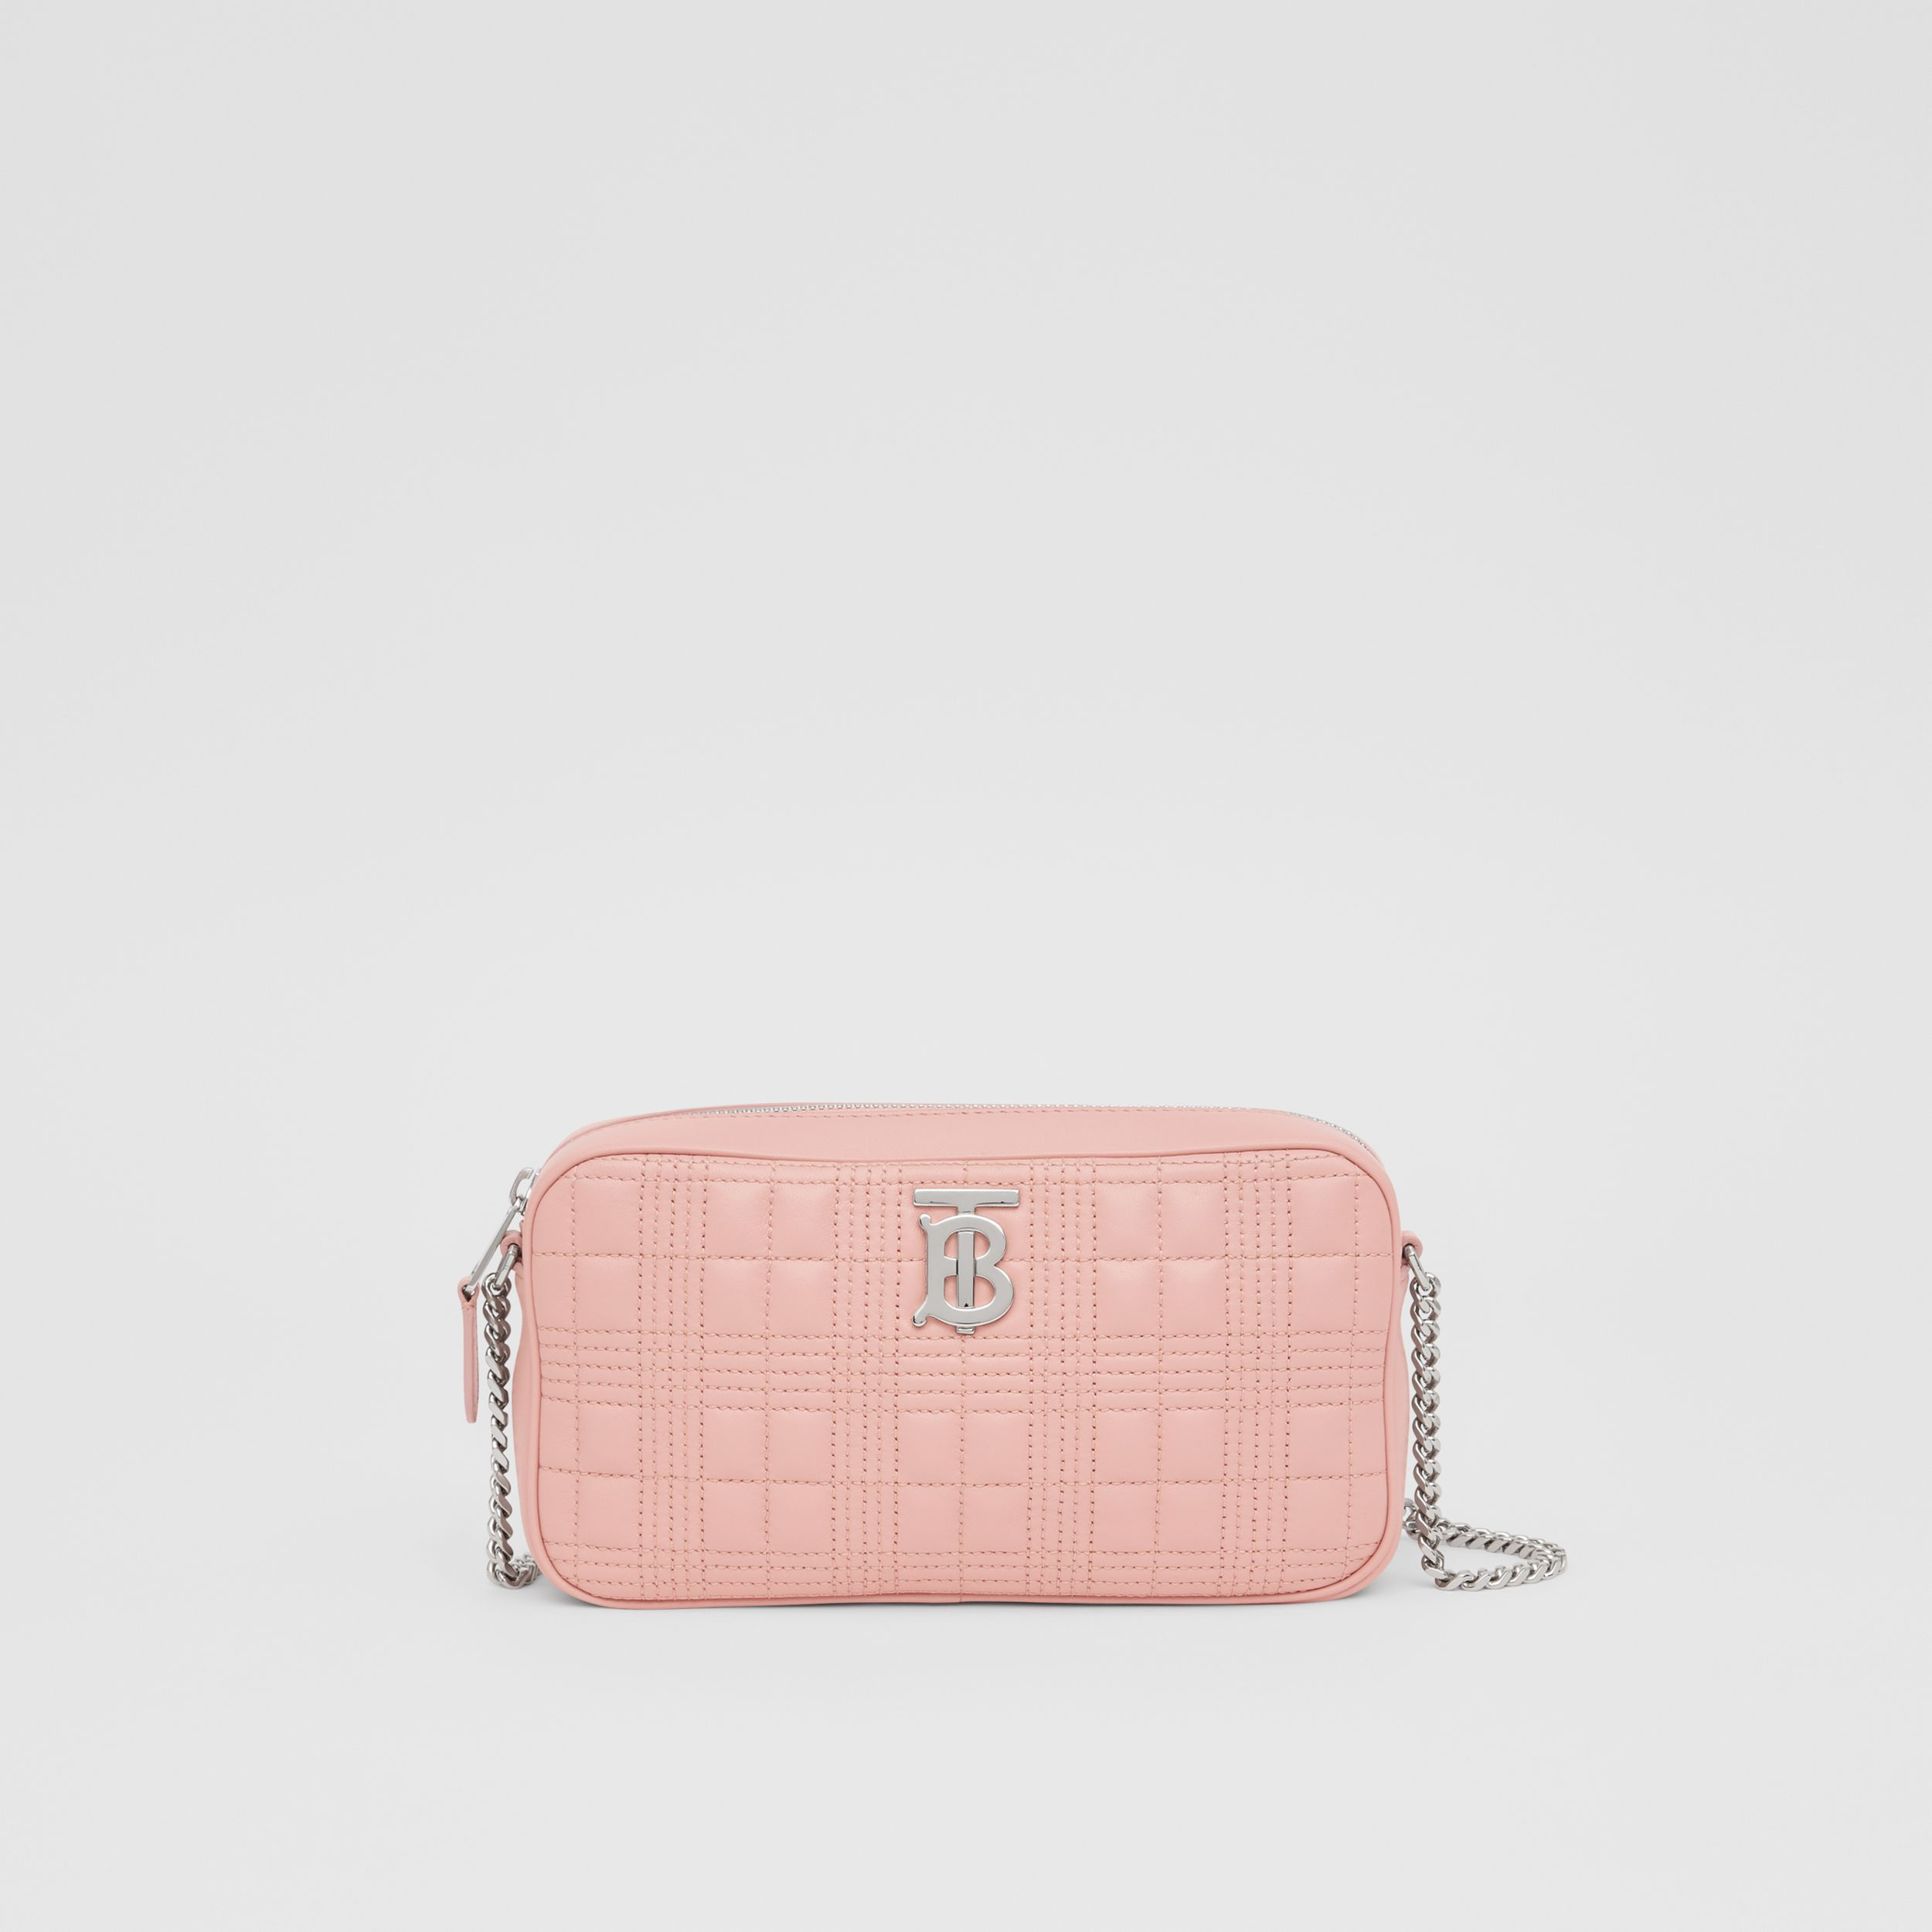 Quilted Lambskin Camera Bag in Blush Pink - Women | Burberry Australia - 1